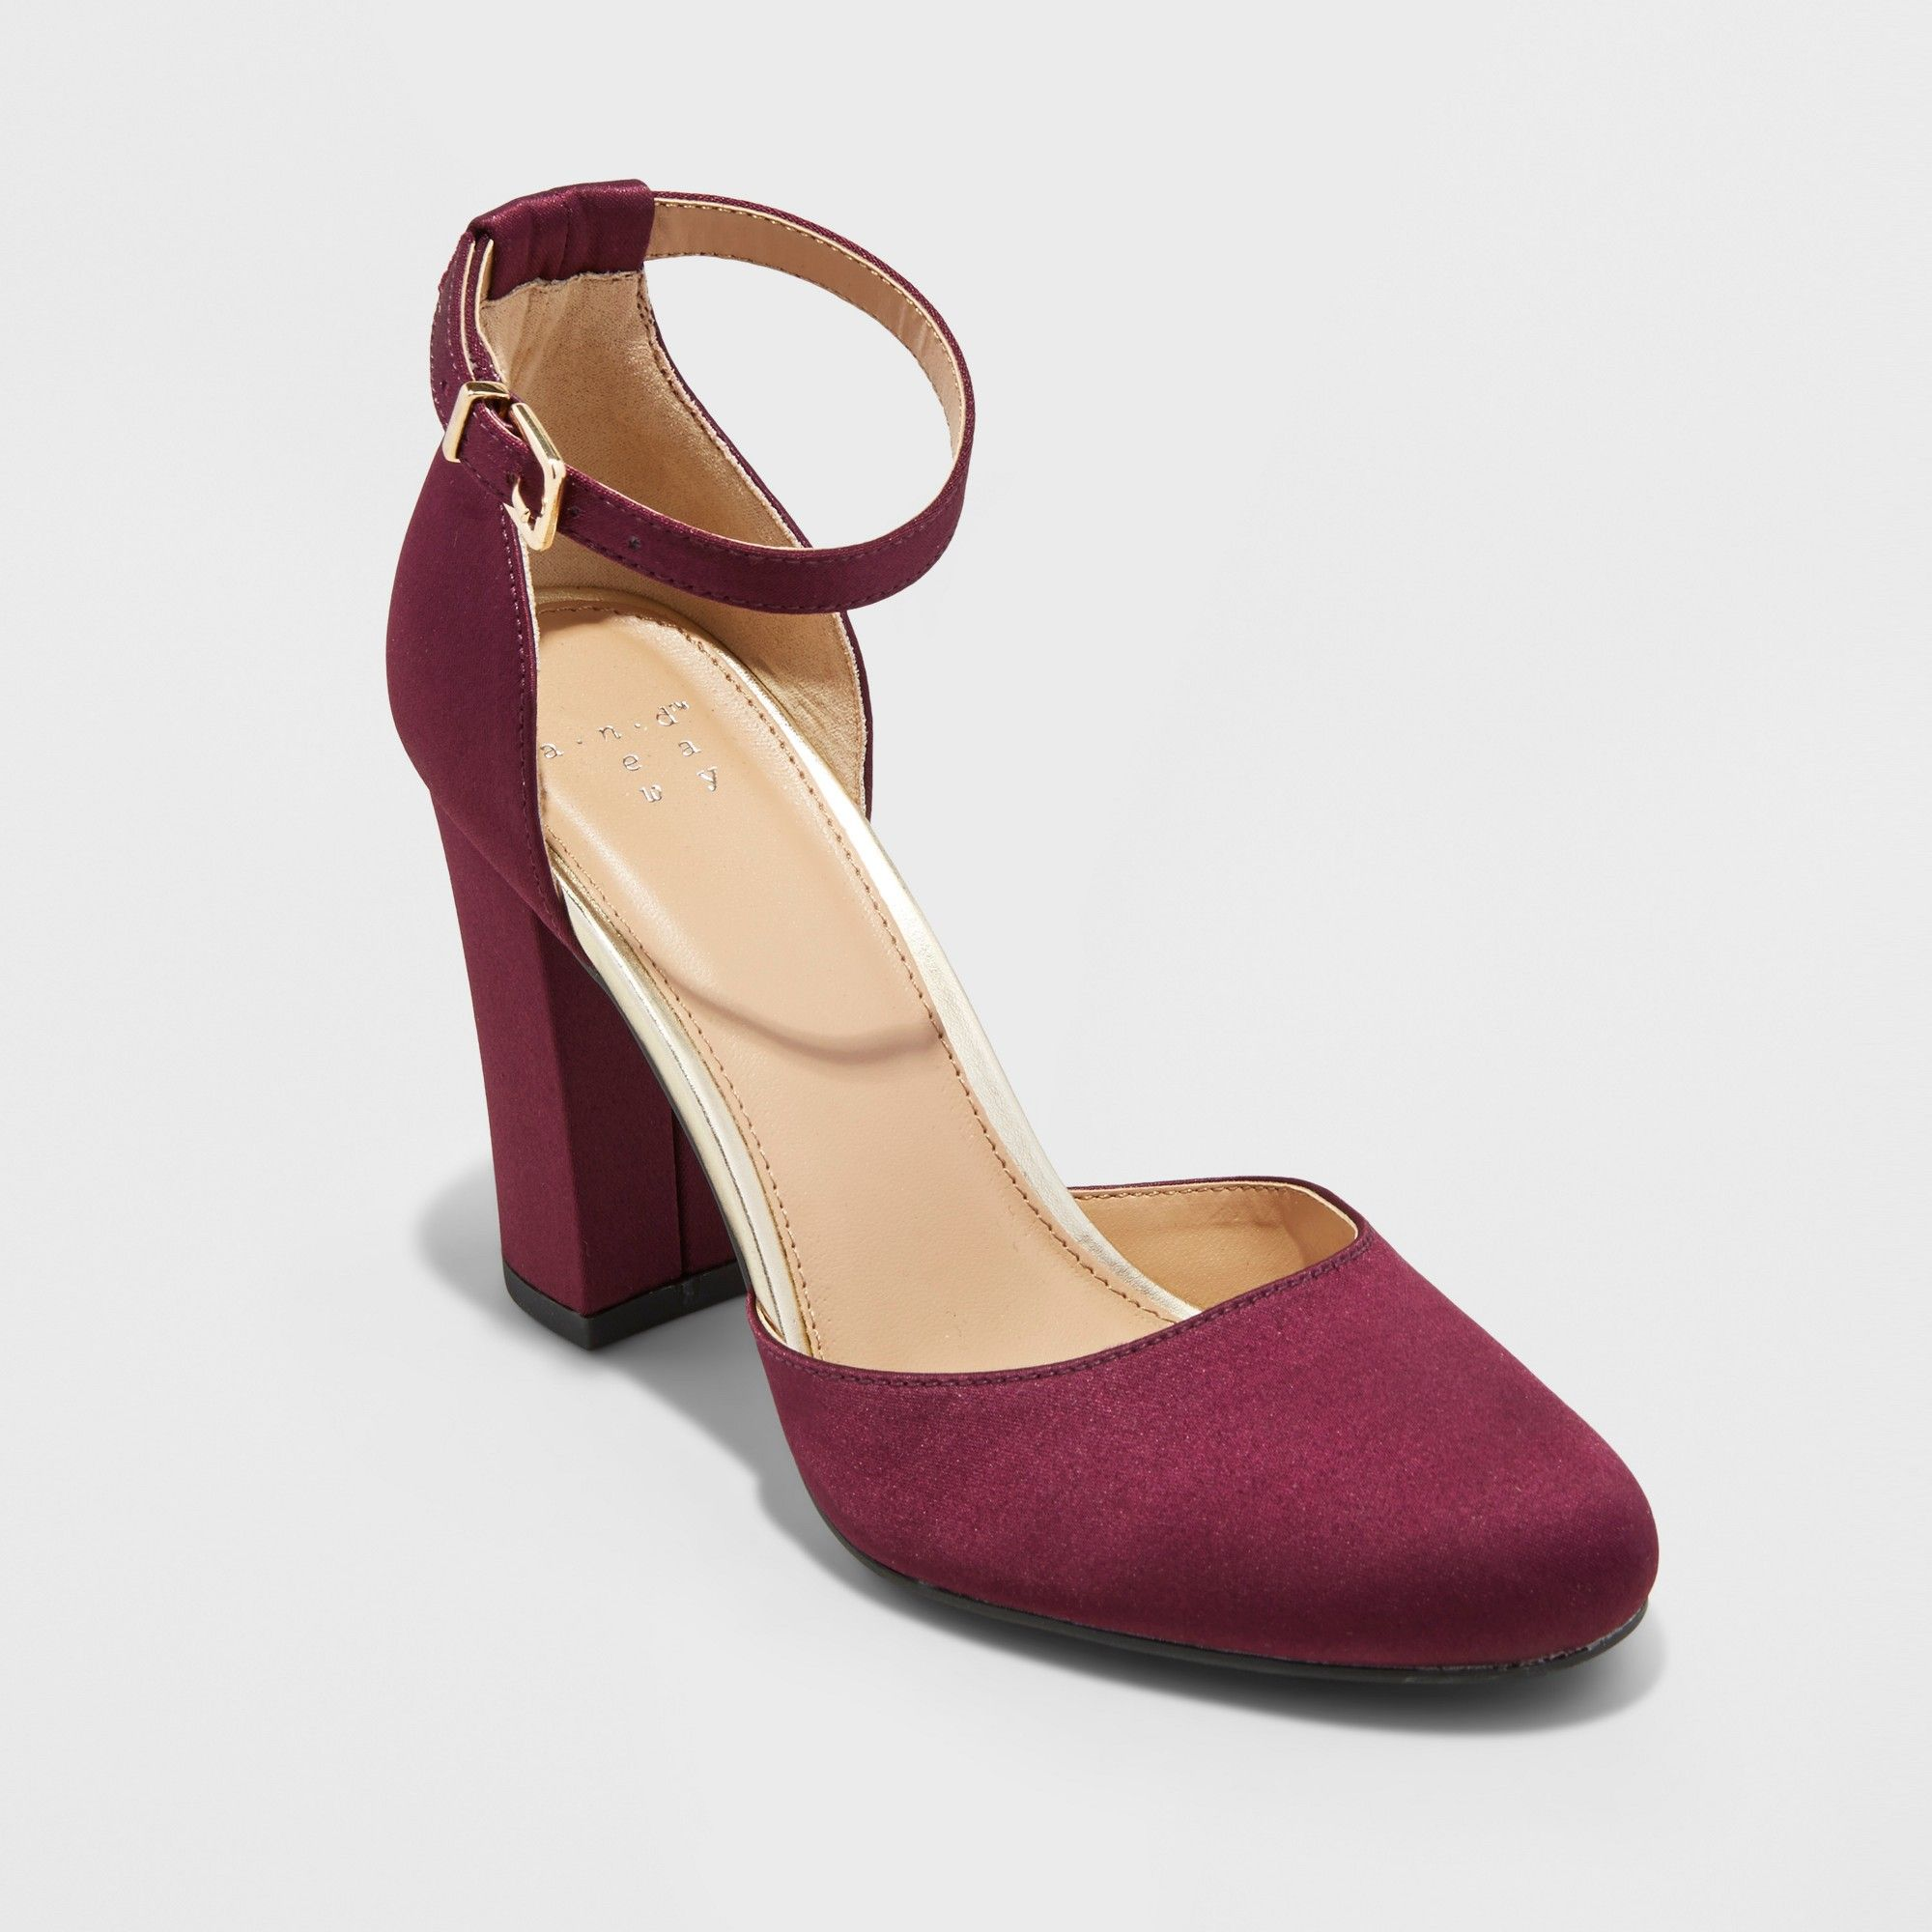 Black lace dress red shoes  Womenus Eloisa Satin Mary Jane Heel Pumps  A New Day Burgundy Red